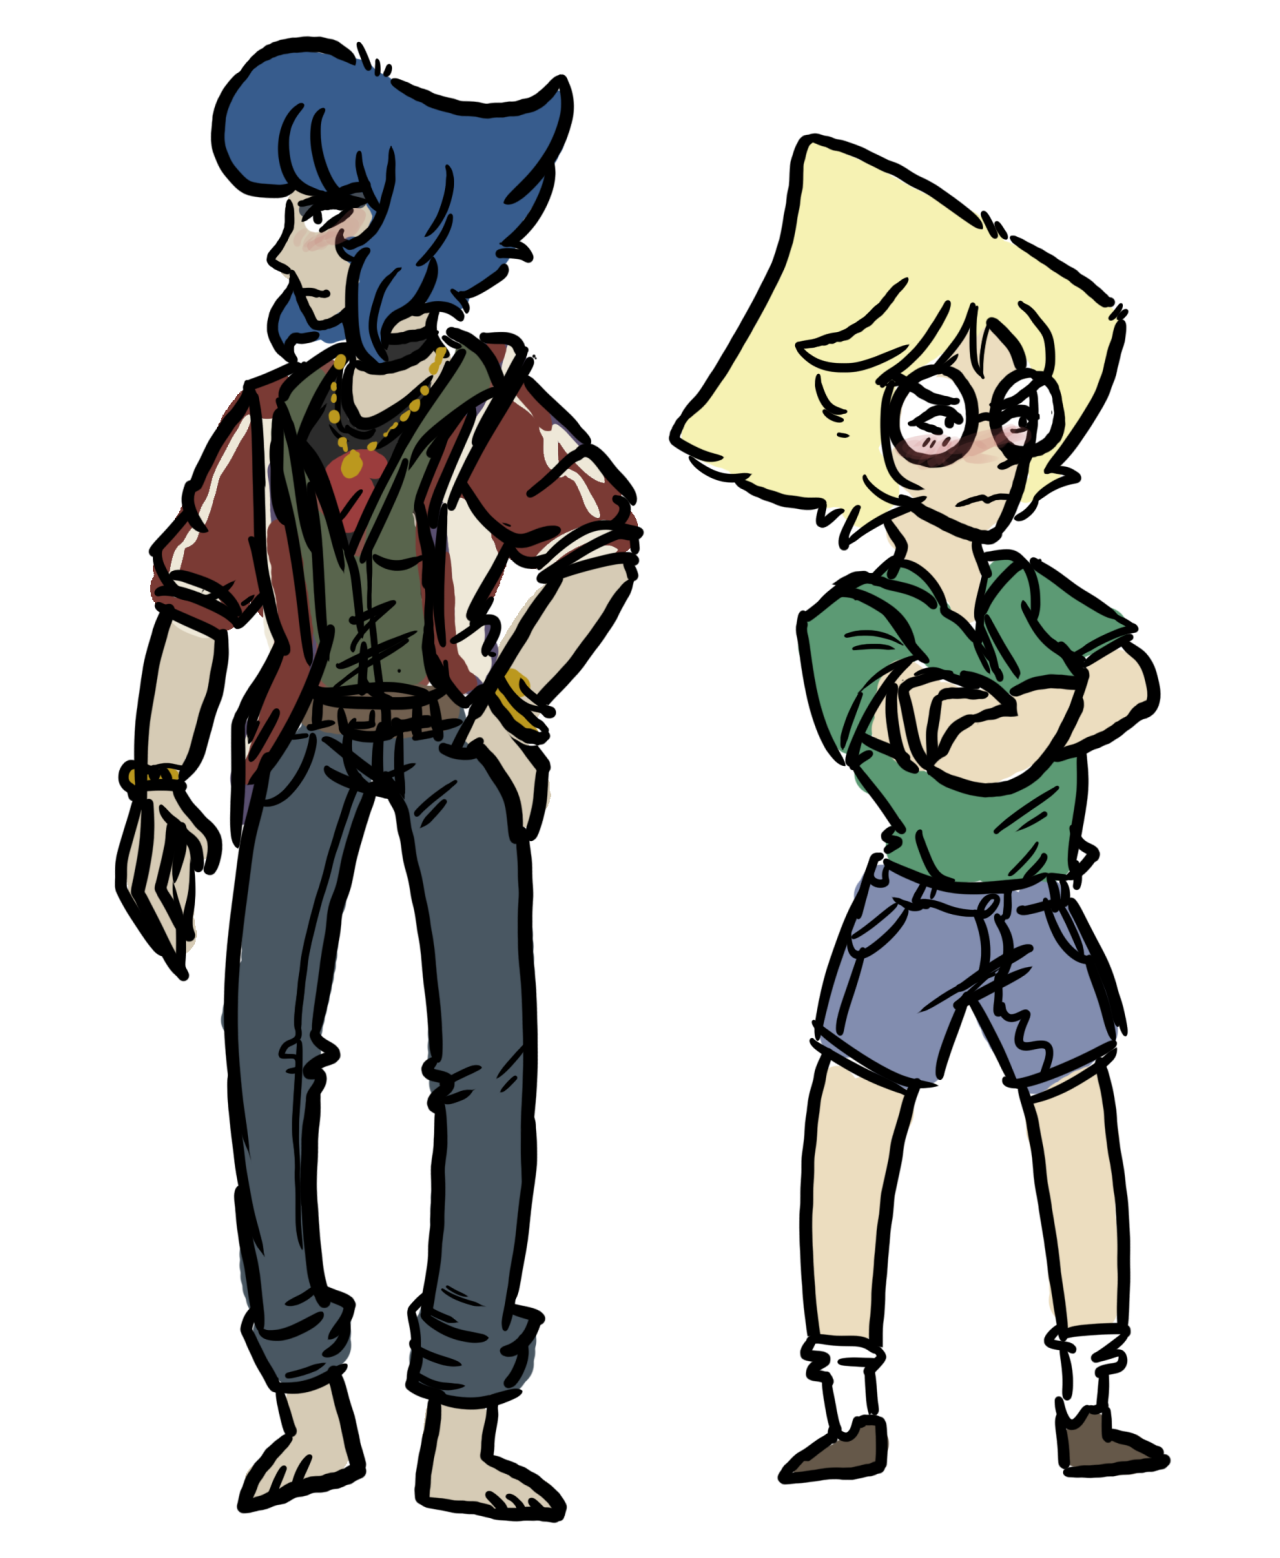 but consider college AU Lapidot where Lapis is an artist and Peridot is an engineer